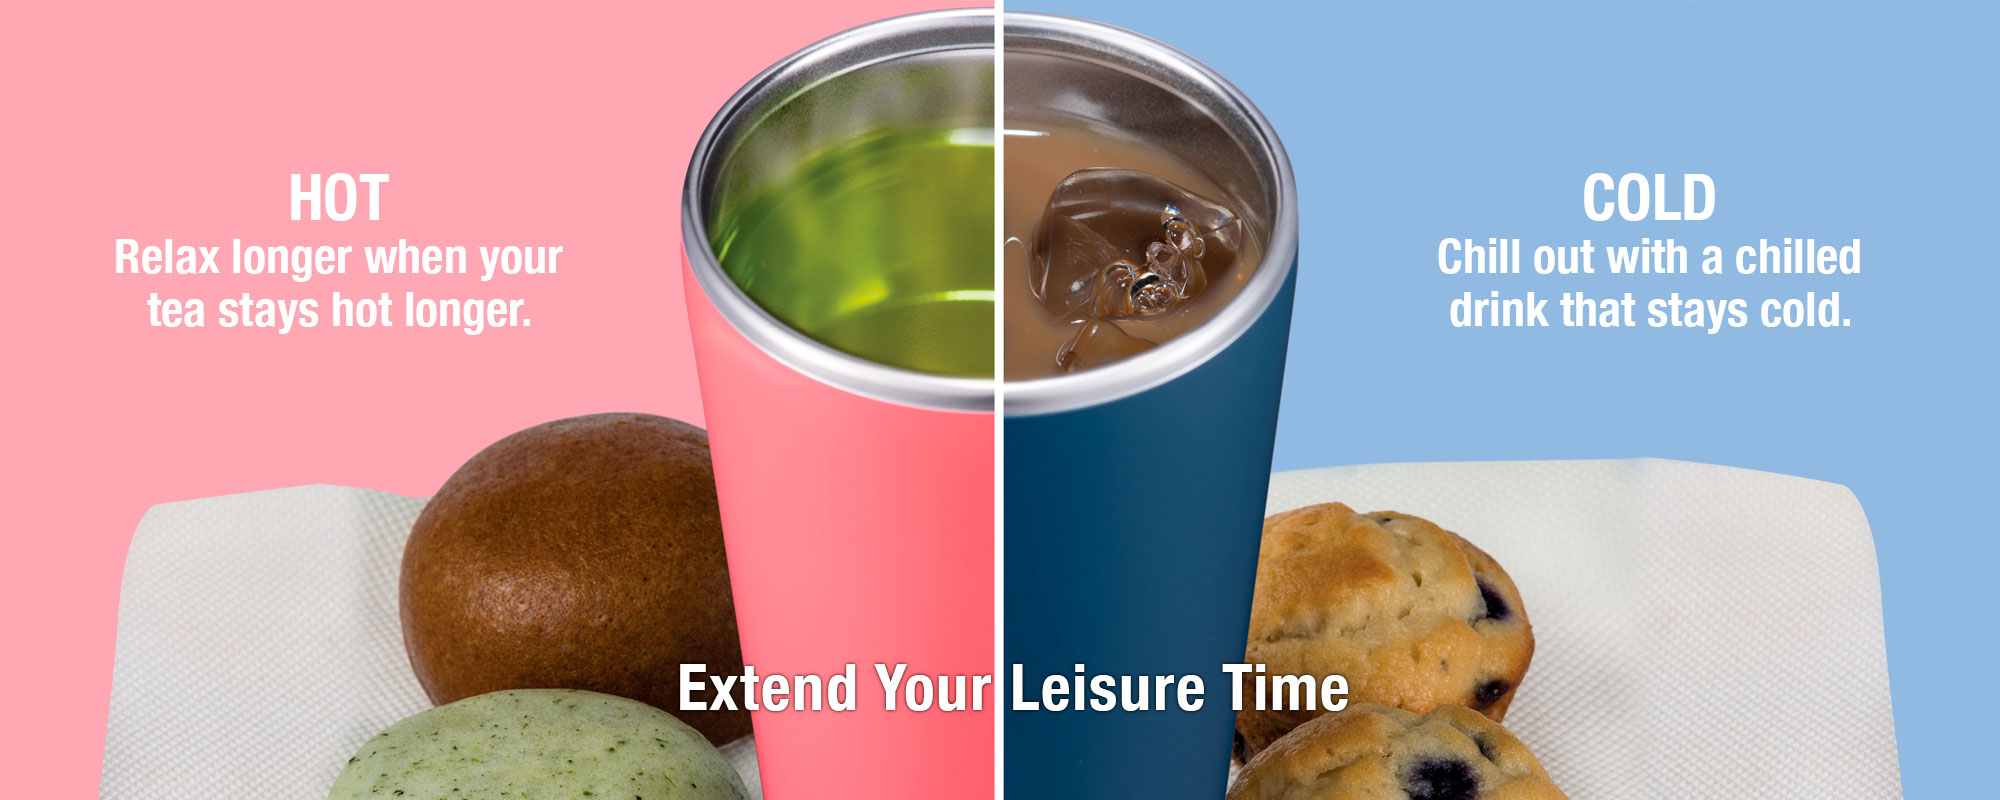 Extend Your Leisure Time